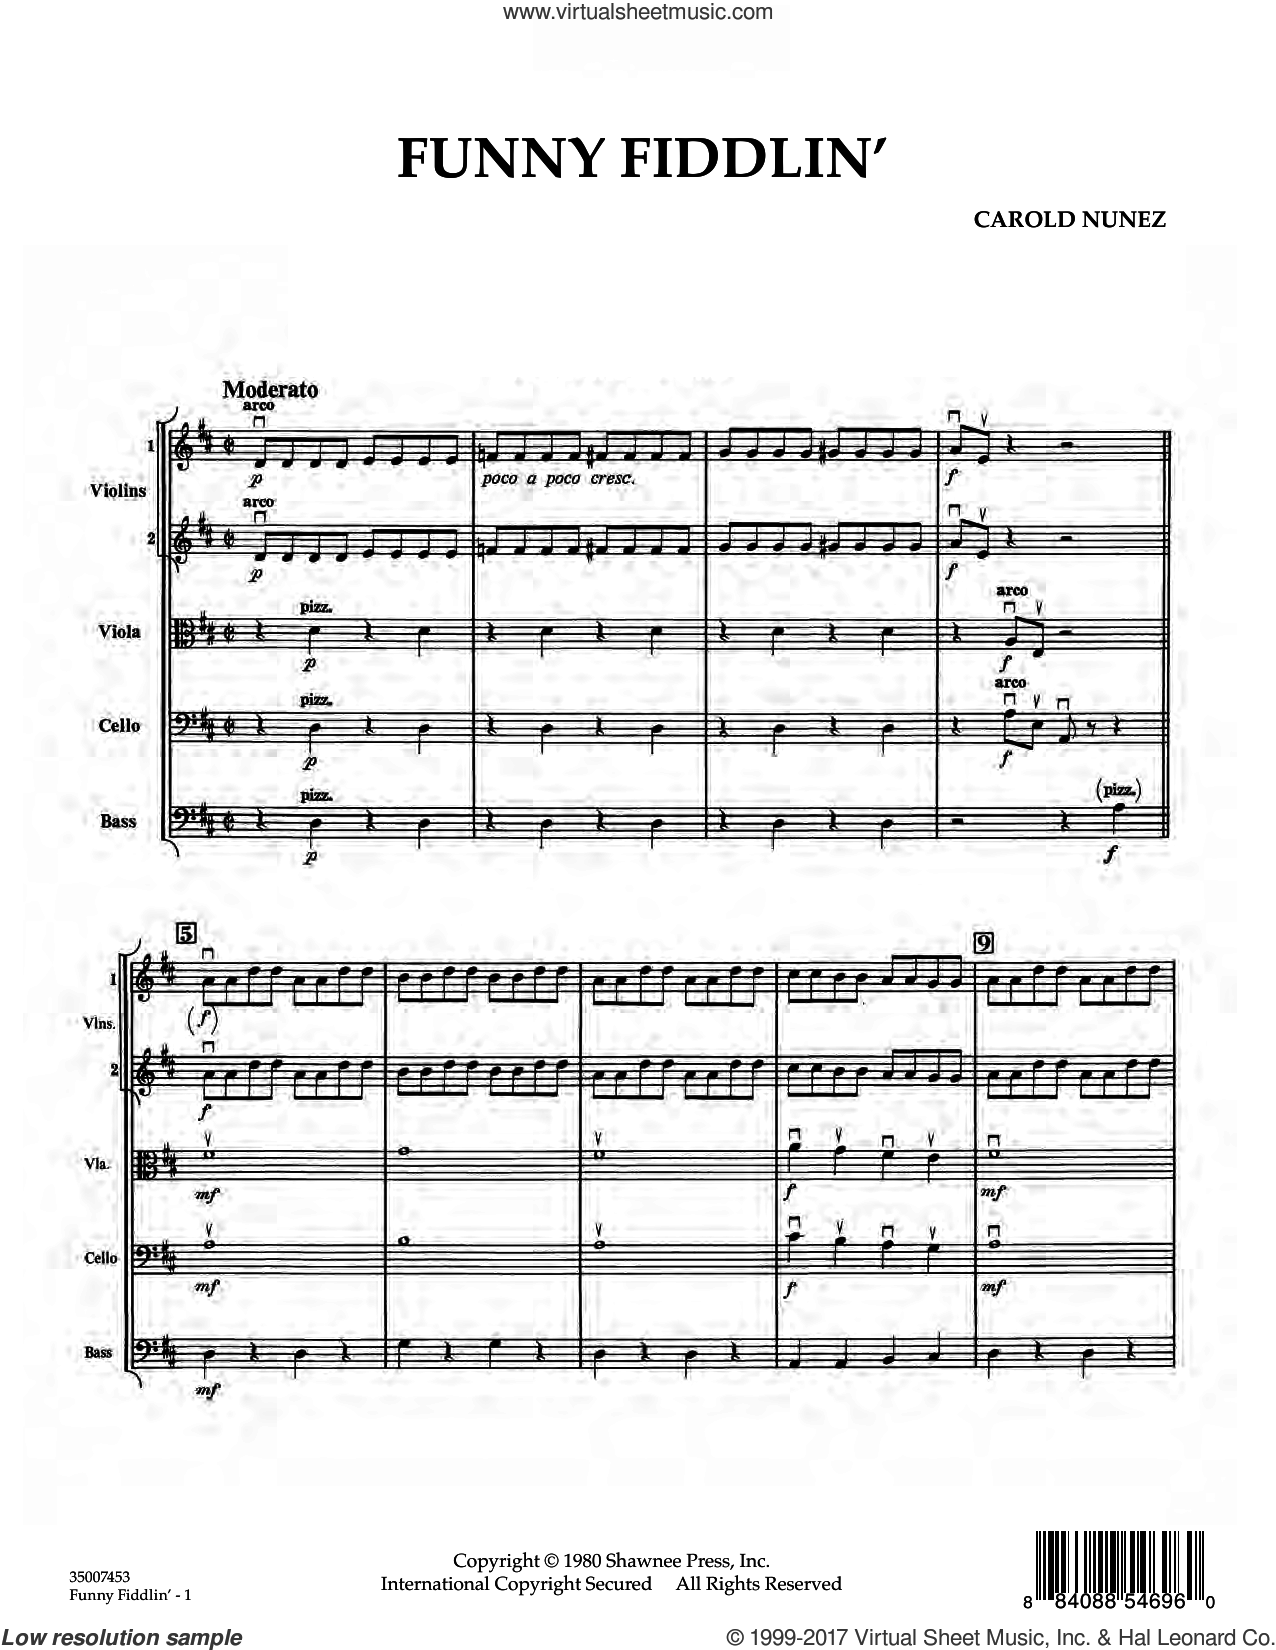 Funny Fiddlin' (COMPLETE) sheet music for orchestra by Carold Nunez, intermediate. Score Image Preview.